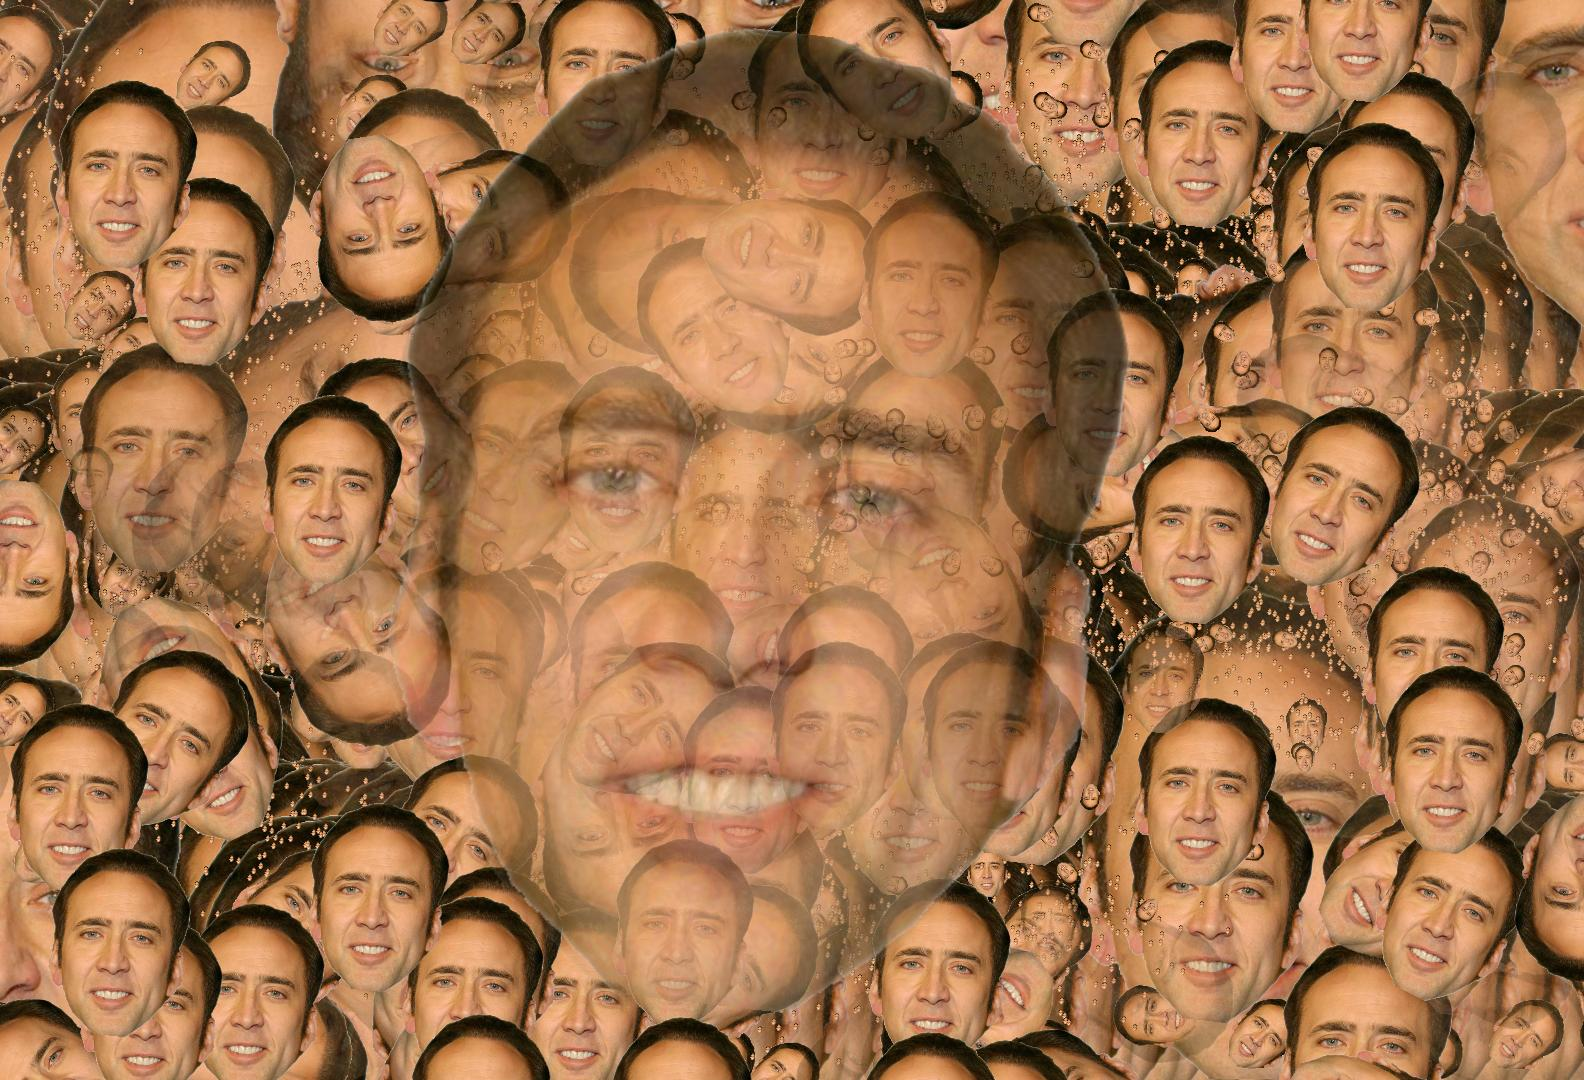 45] Funny Nicolas Cage Wallpaper on WallpaperSafari 1584x1080